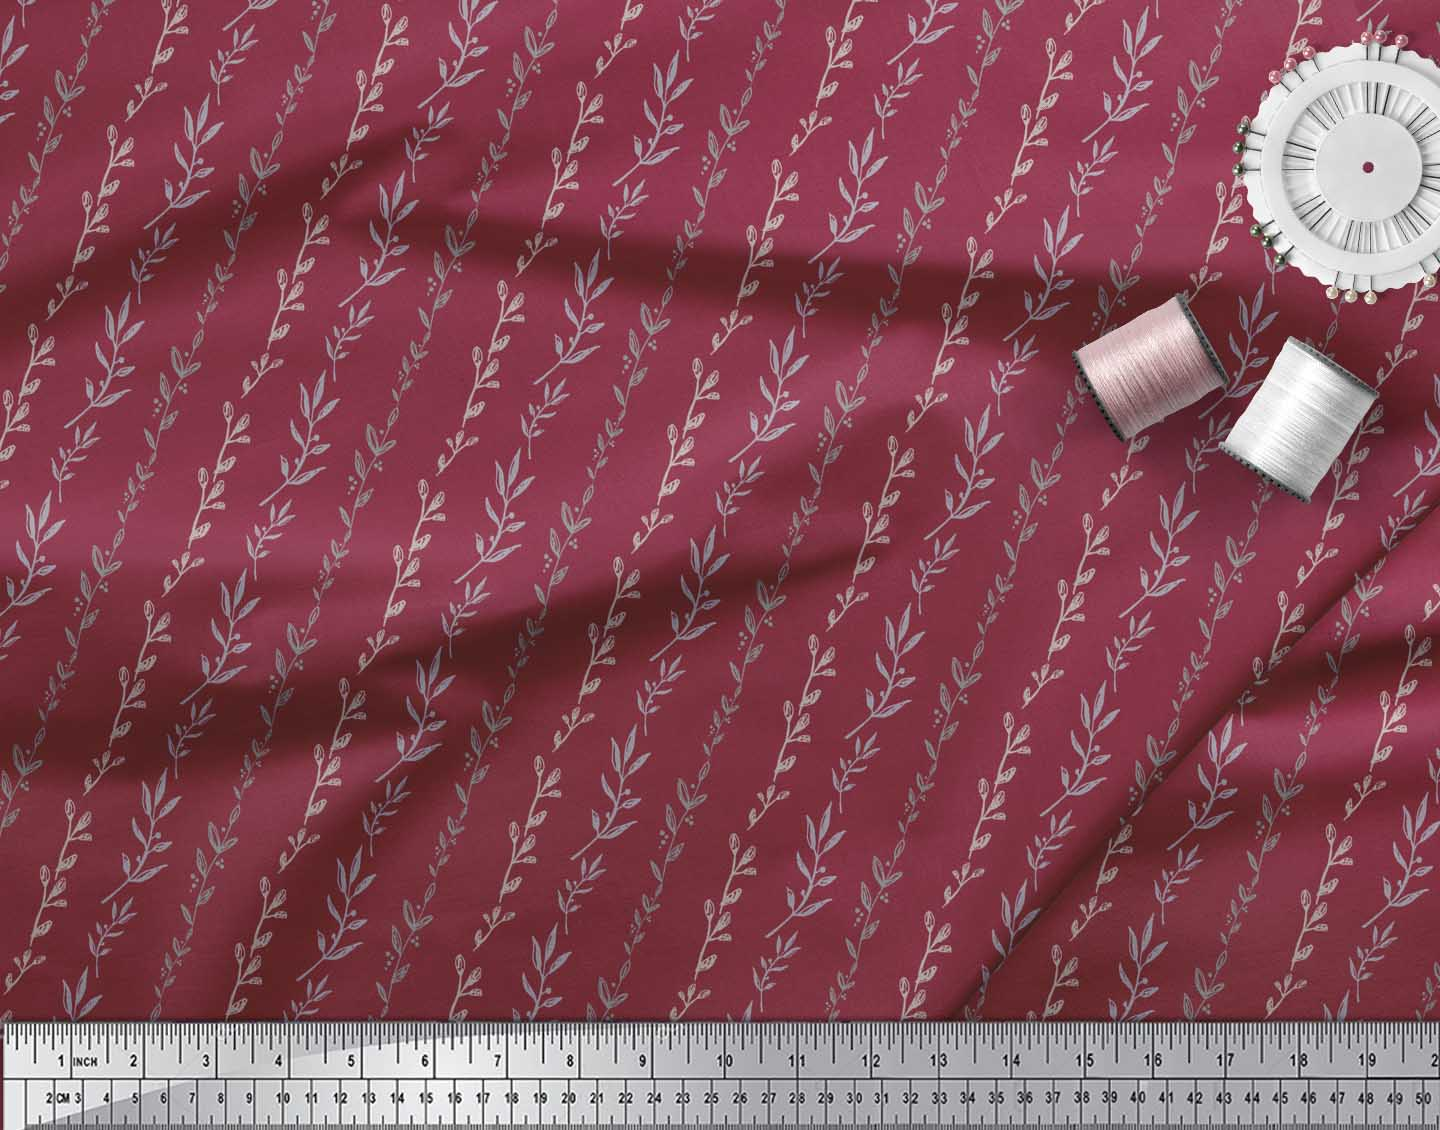 Soimoi-Red-Cotton-Poplin-Fabric-Buds-amp-Leaves-Print-Sewing-Fabric-OWg thumbnail 3